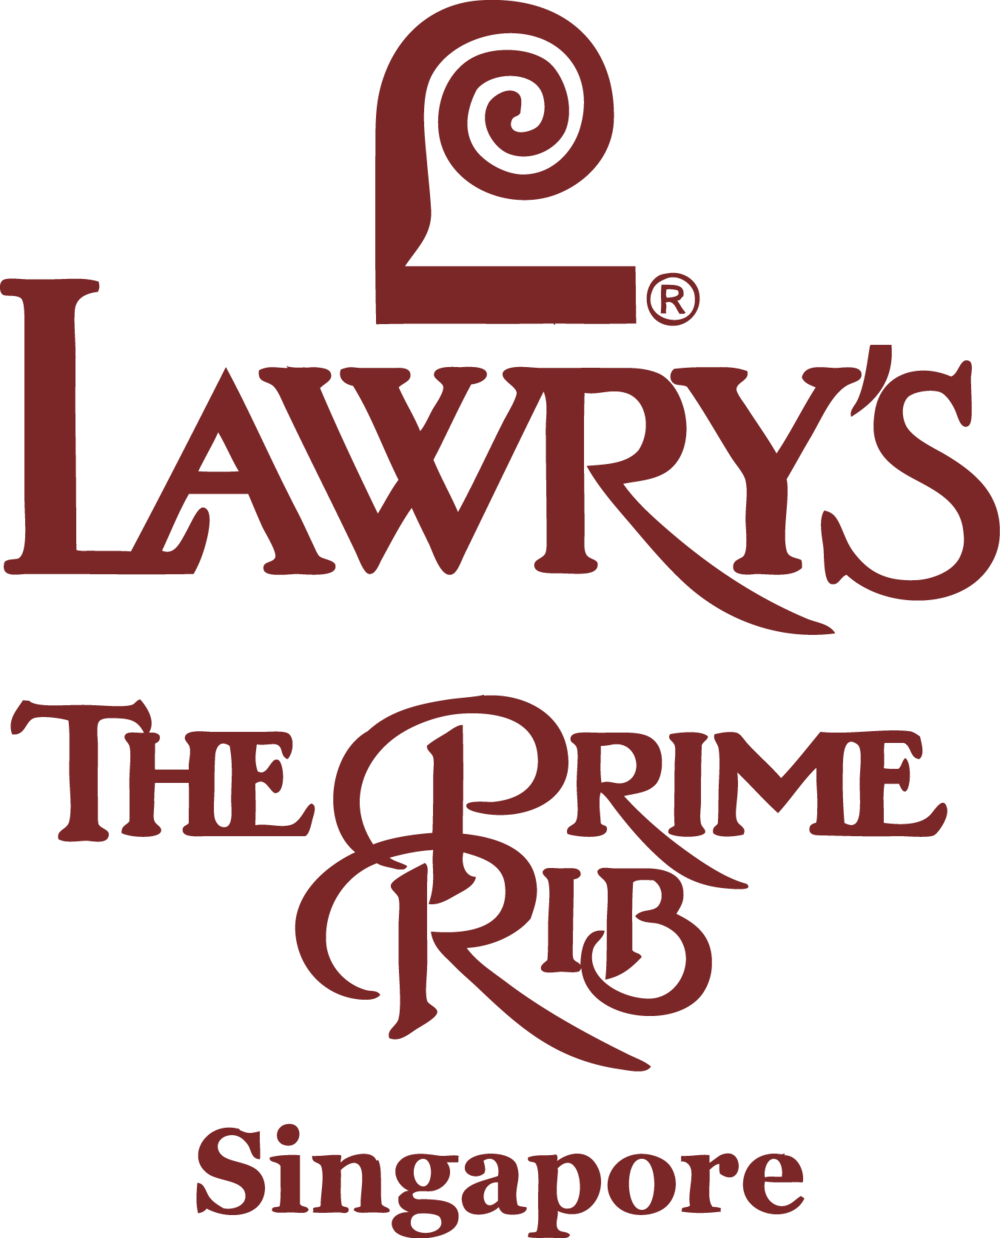 Copy of Lawry's The Prime Ribs Singapore